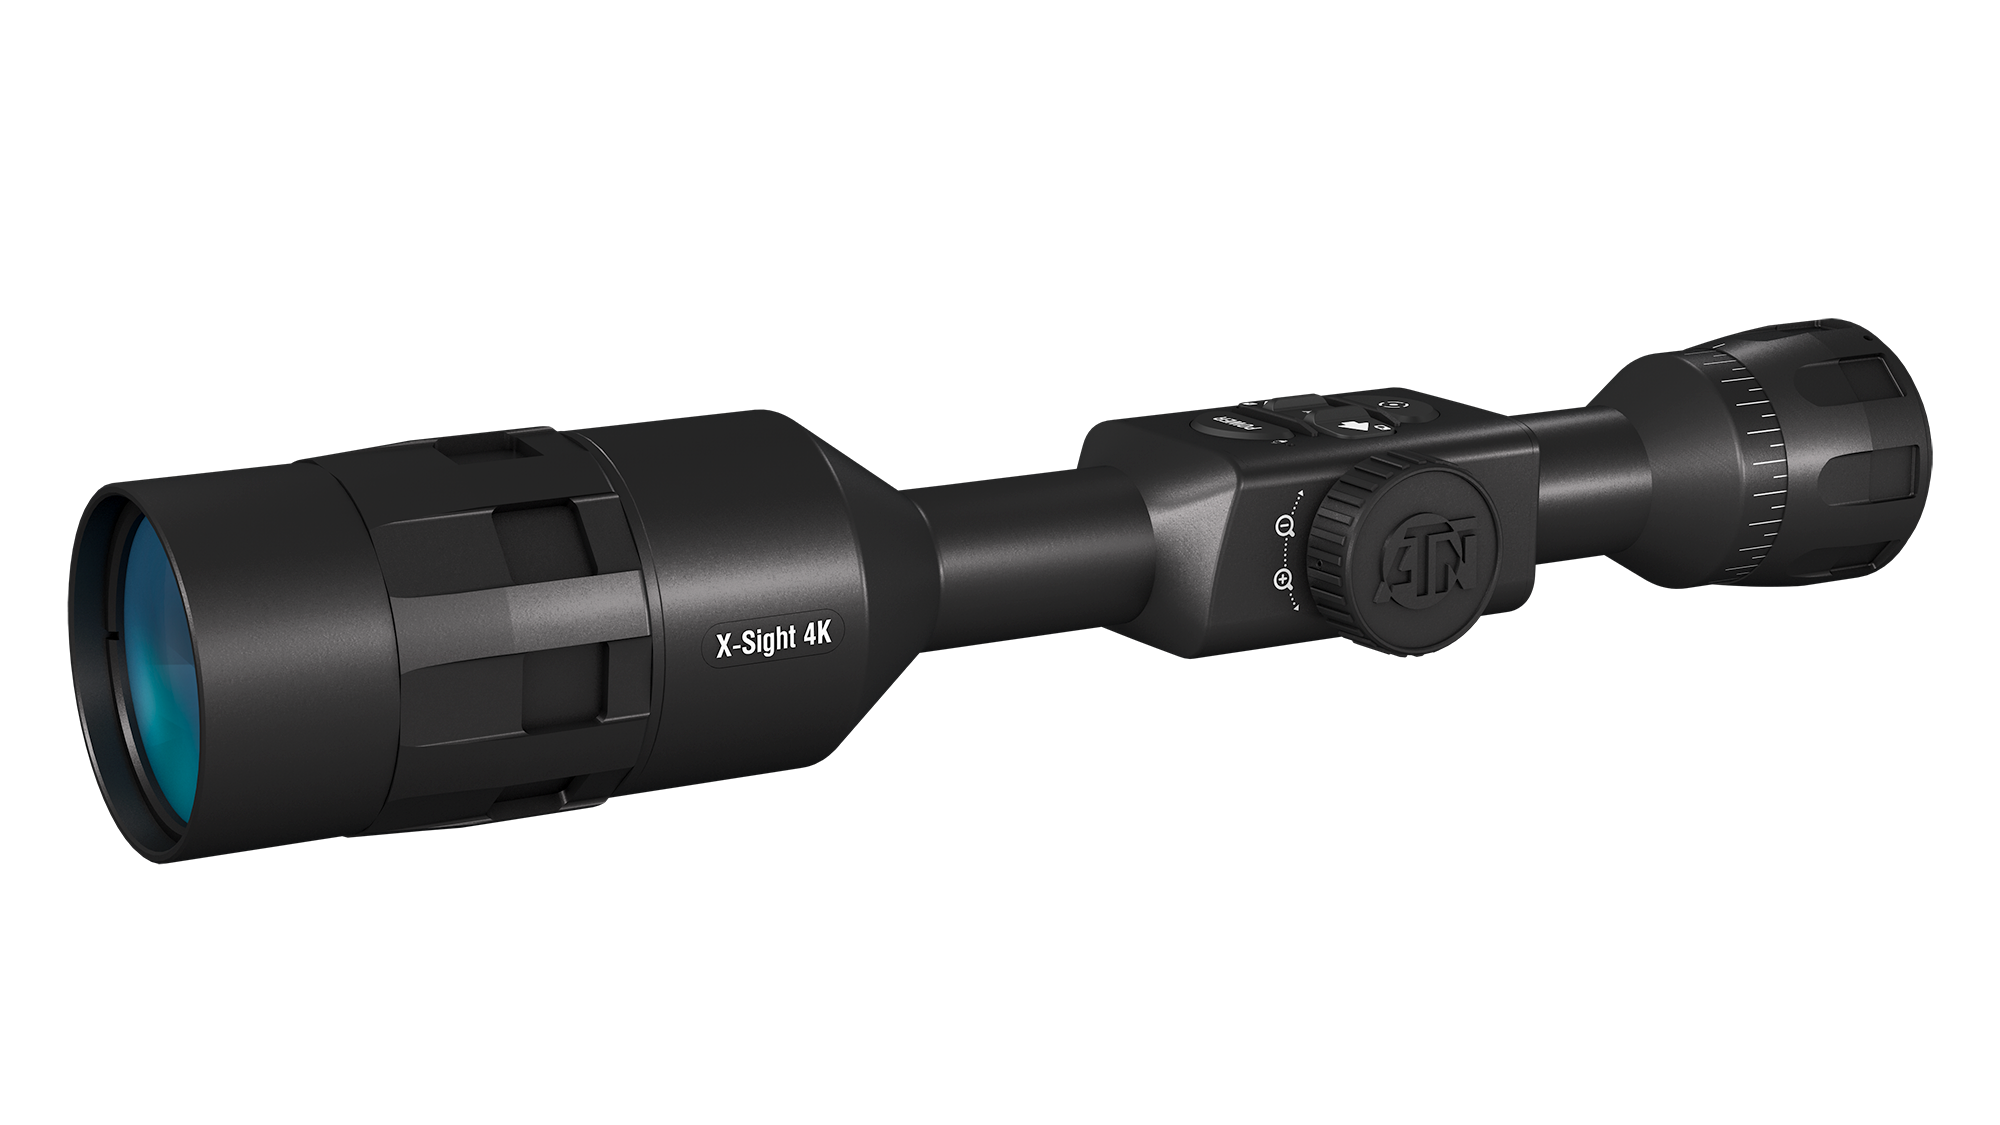 ATN X-Sight 4K Pro 5-20x Smart Day/Night Digital Riflescope